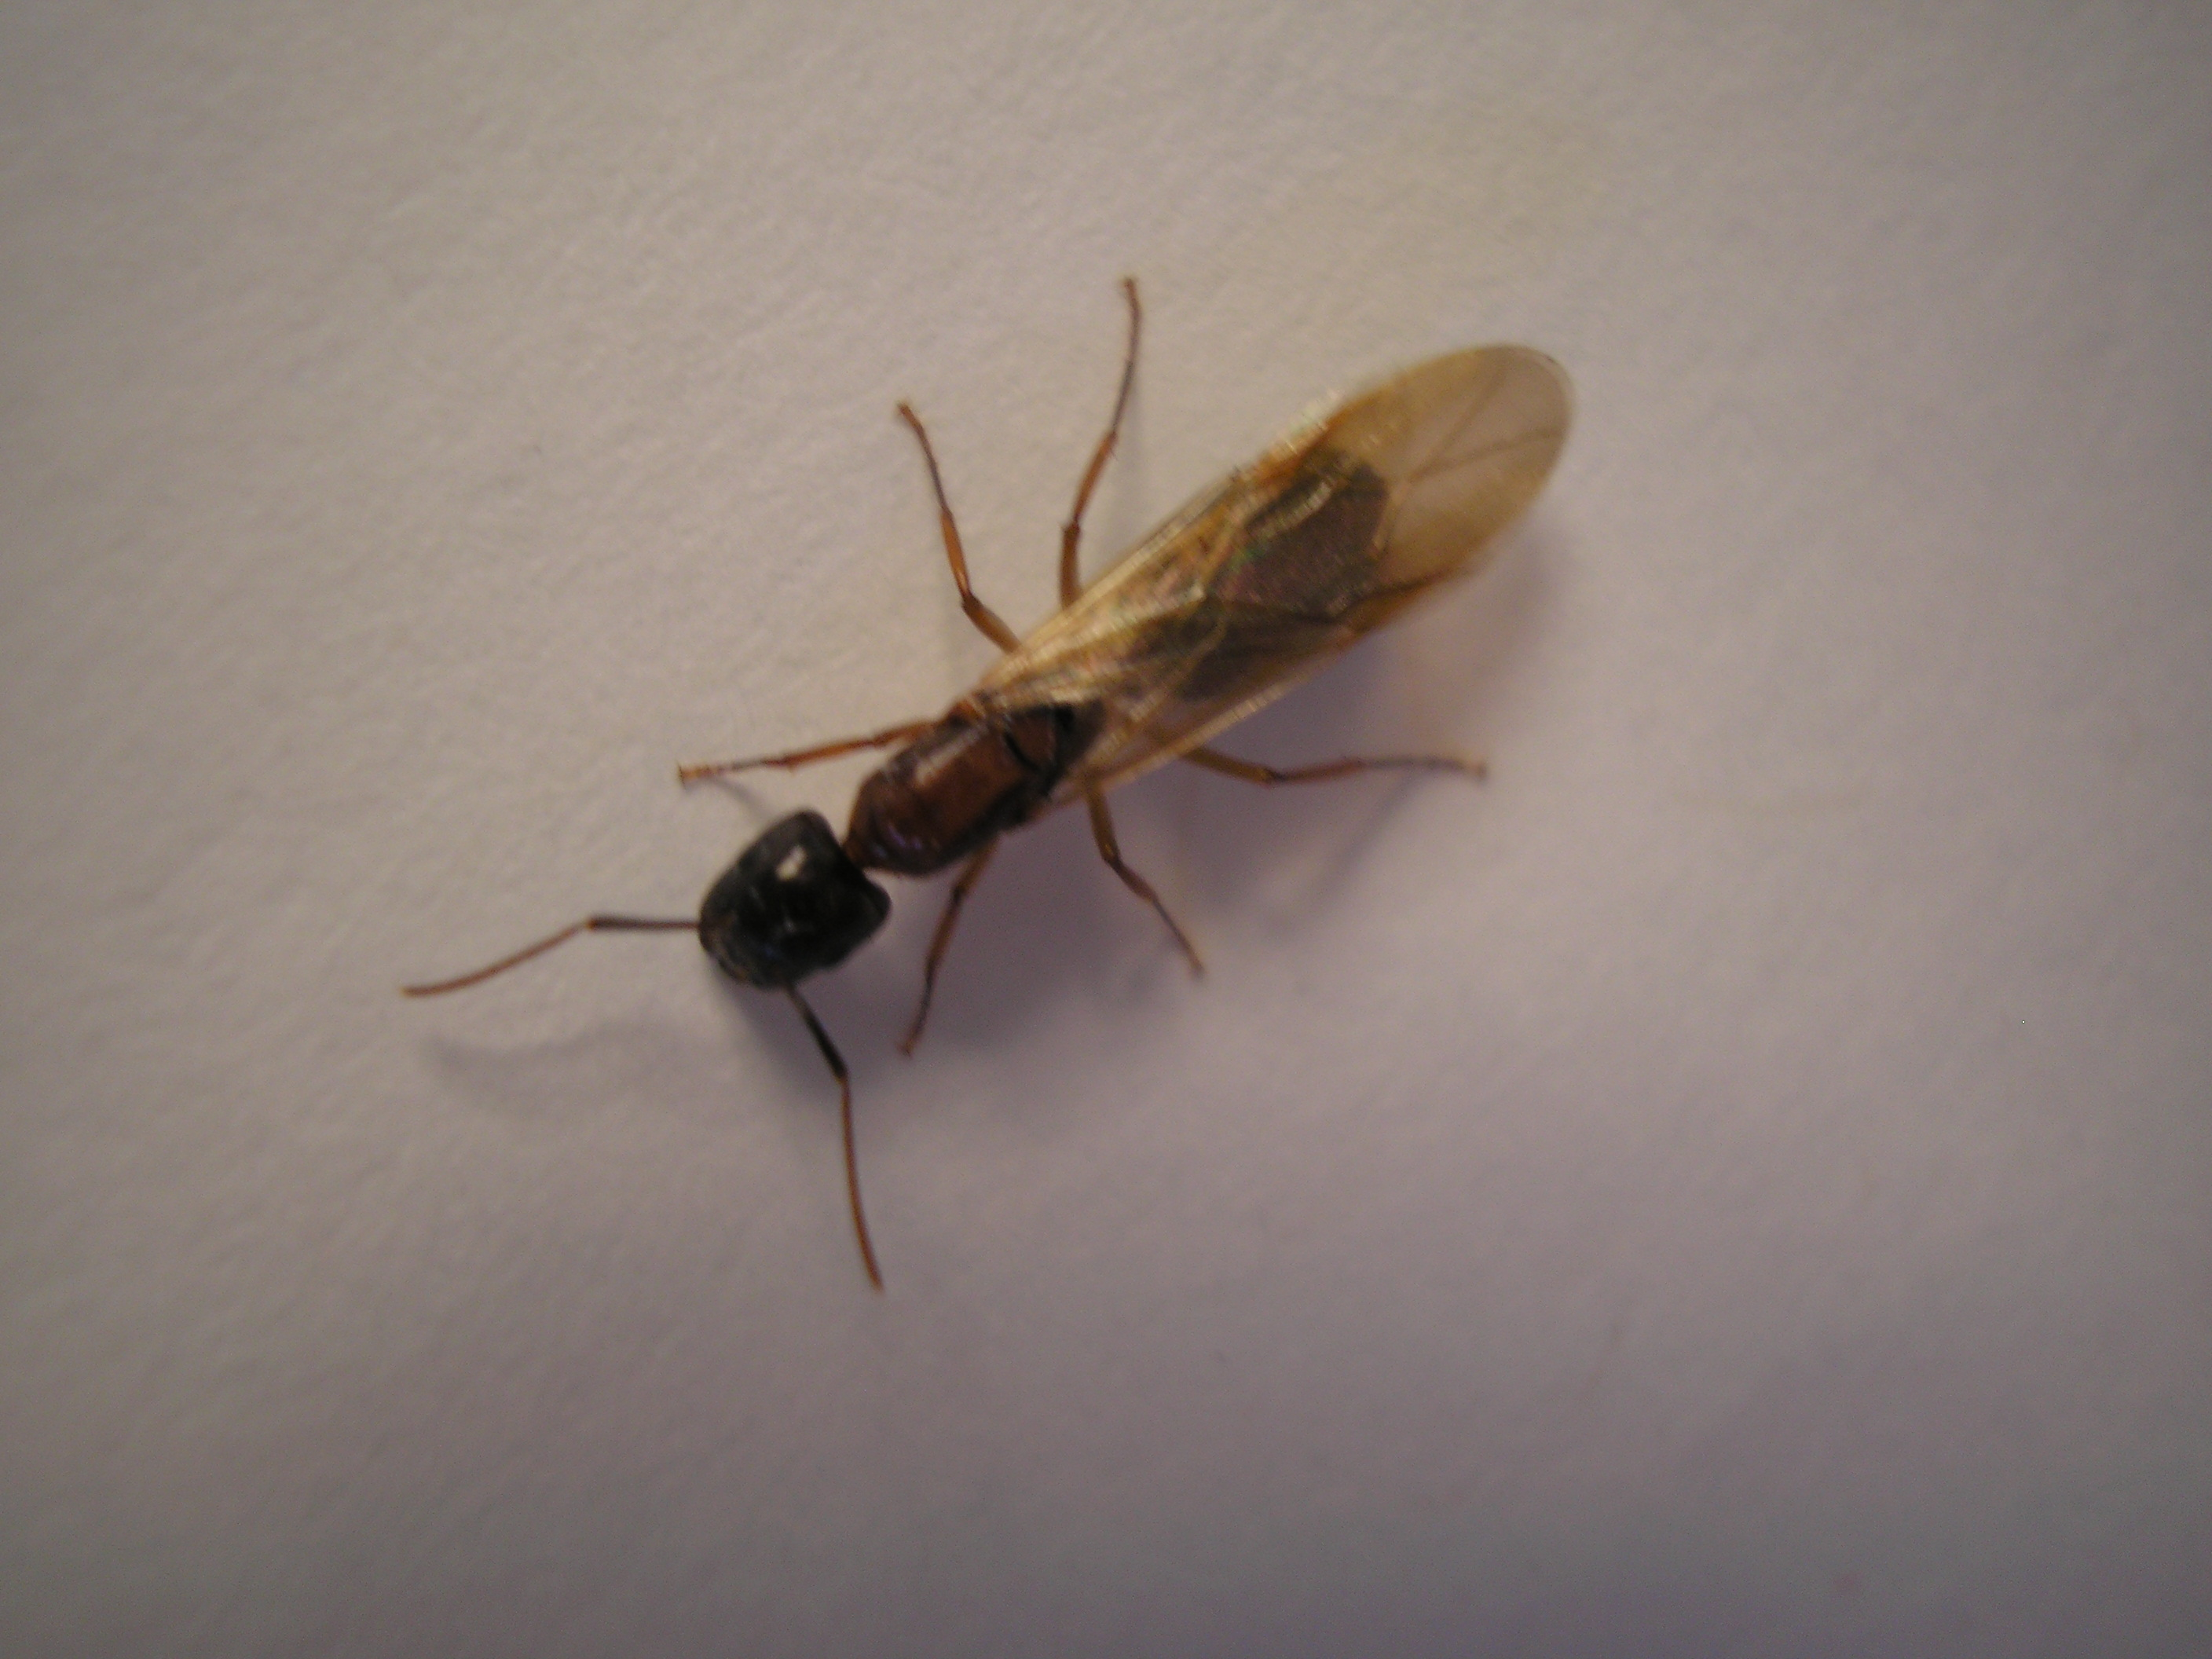 How to kill flying ants insects for Winged ants in bathroom